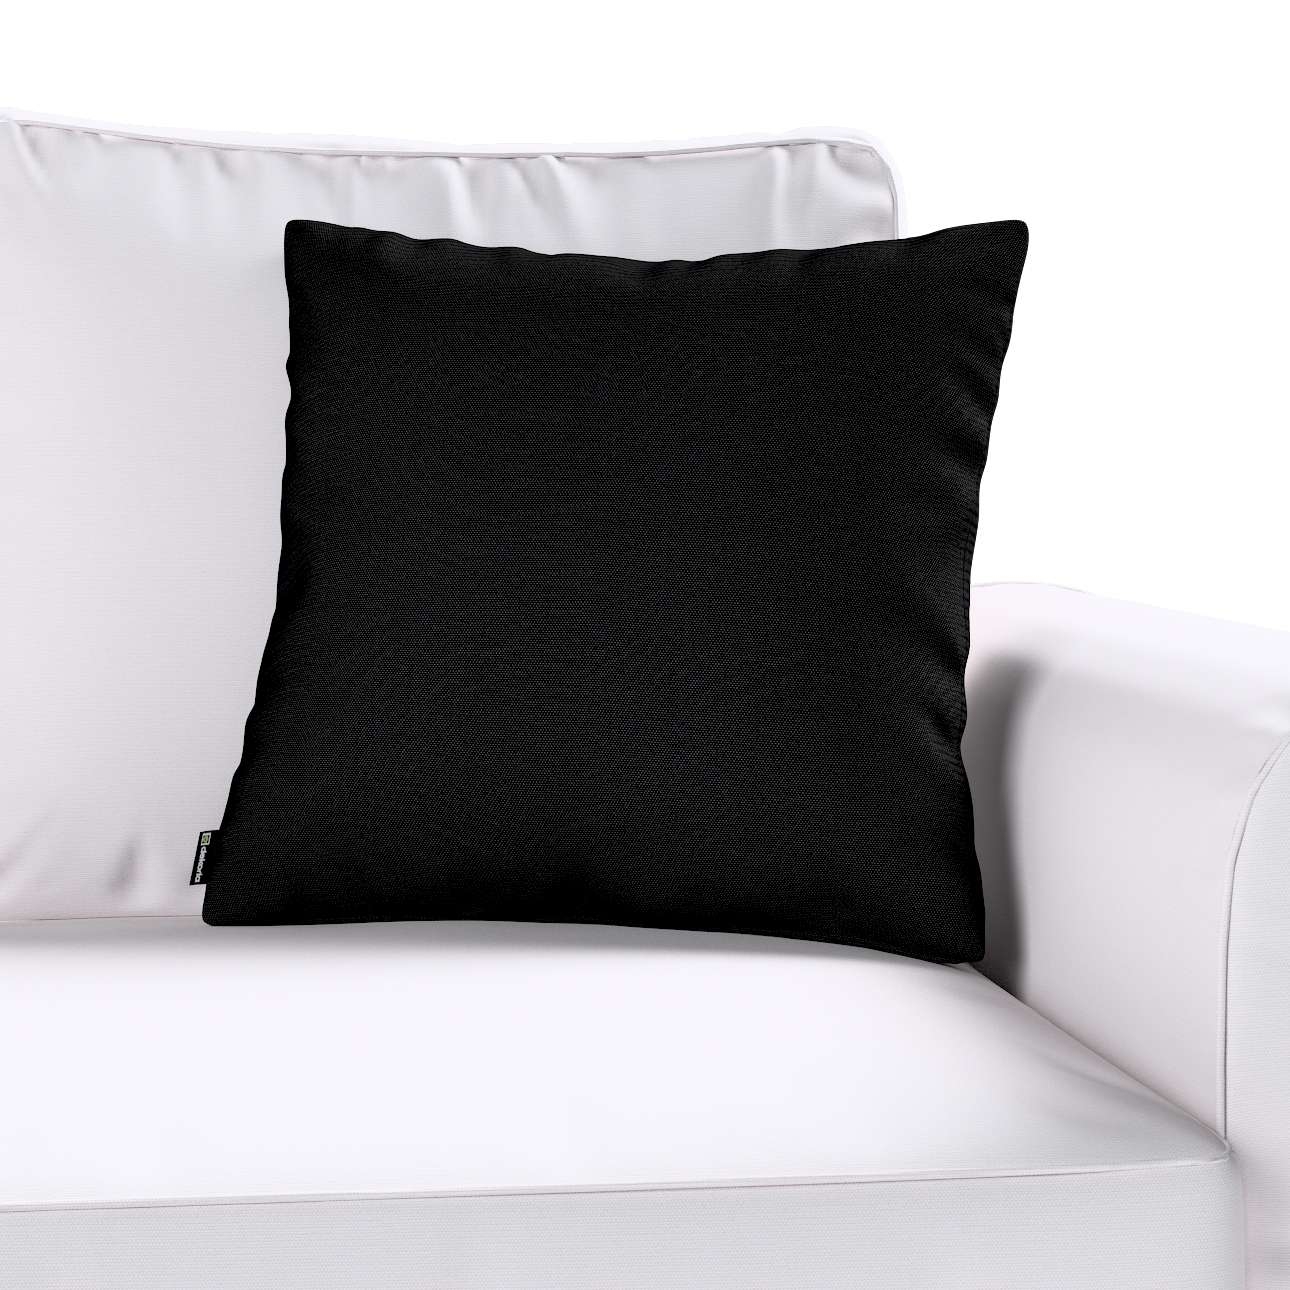 Kinga cushion cover in collection Etna, fabric: 705-00